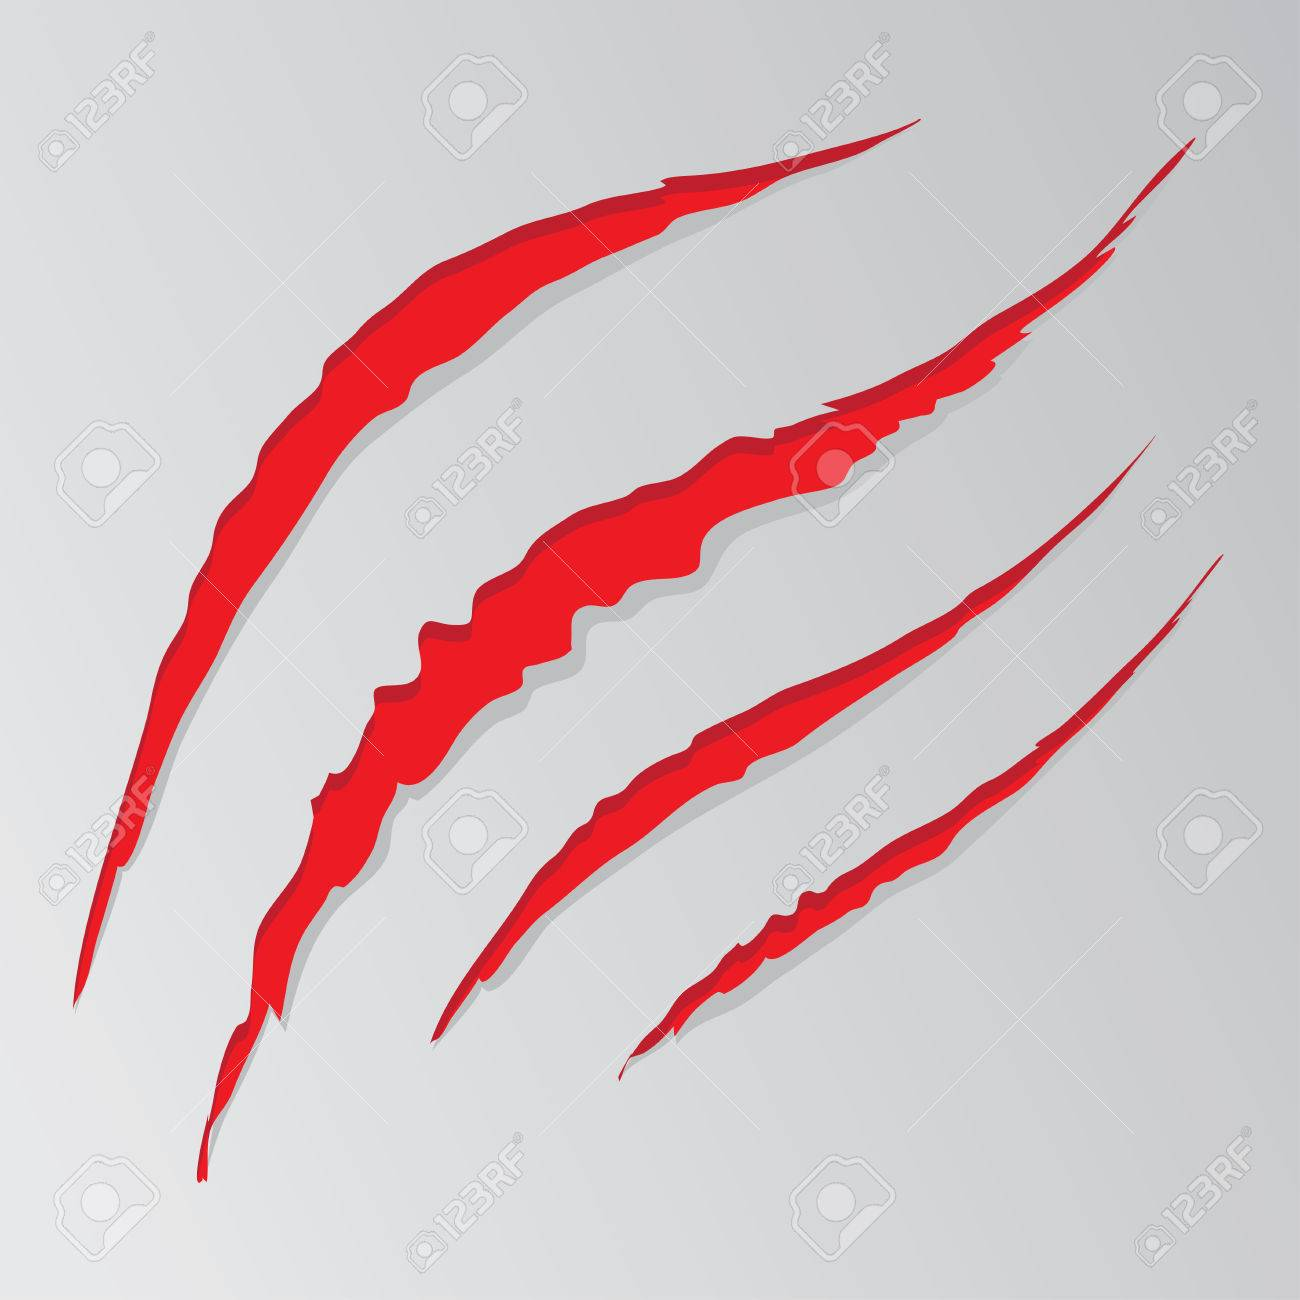 1300x1300 Cat Claw Scratches Marks Set On White Background. Royalty Free